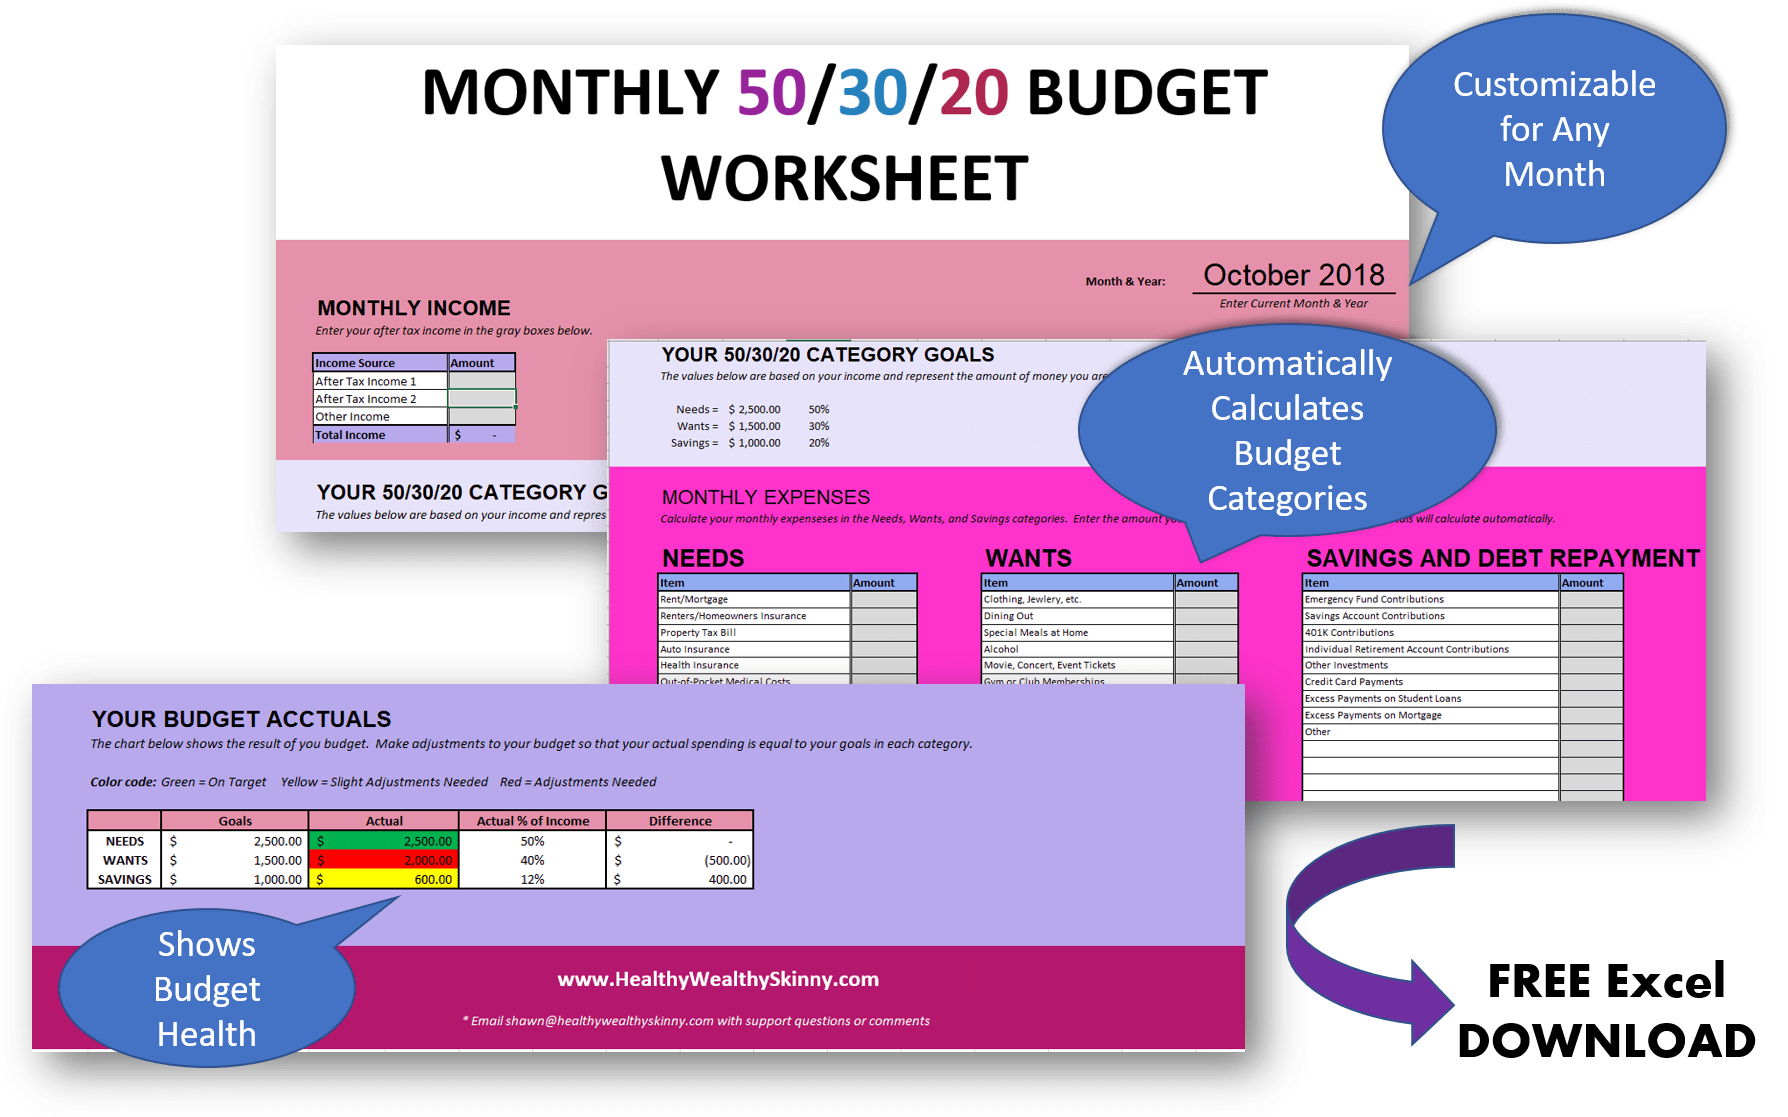 Free 50/30/20 Budget Worksheet | Free Excel Spreadsheet to help you create and maintain your monthly budget #budgeting #budget #freedownload #hws #healthywealthyskinny